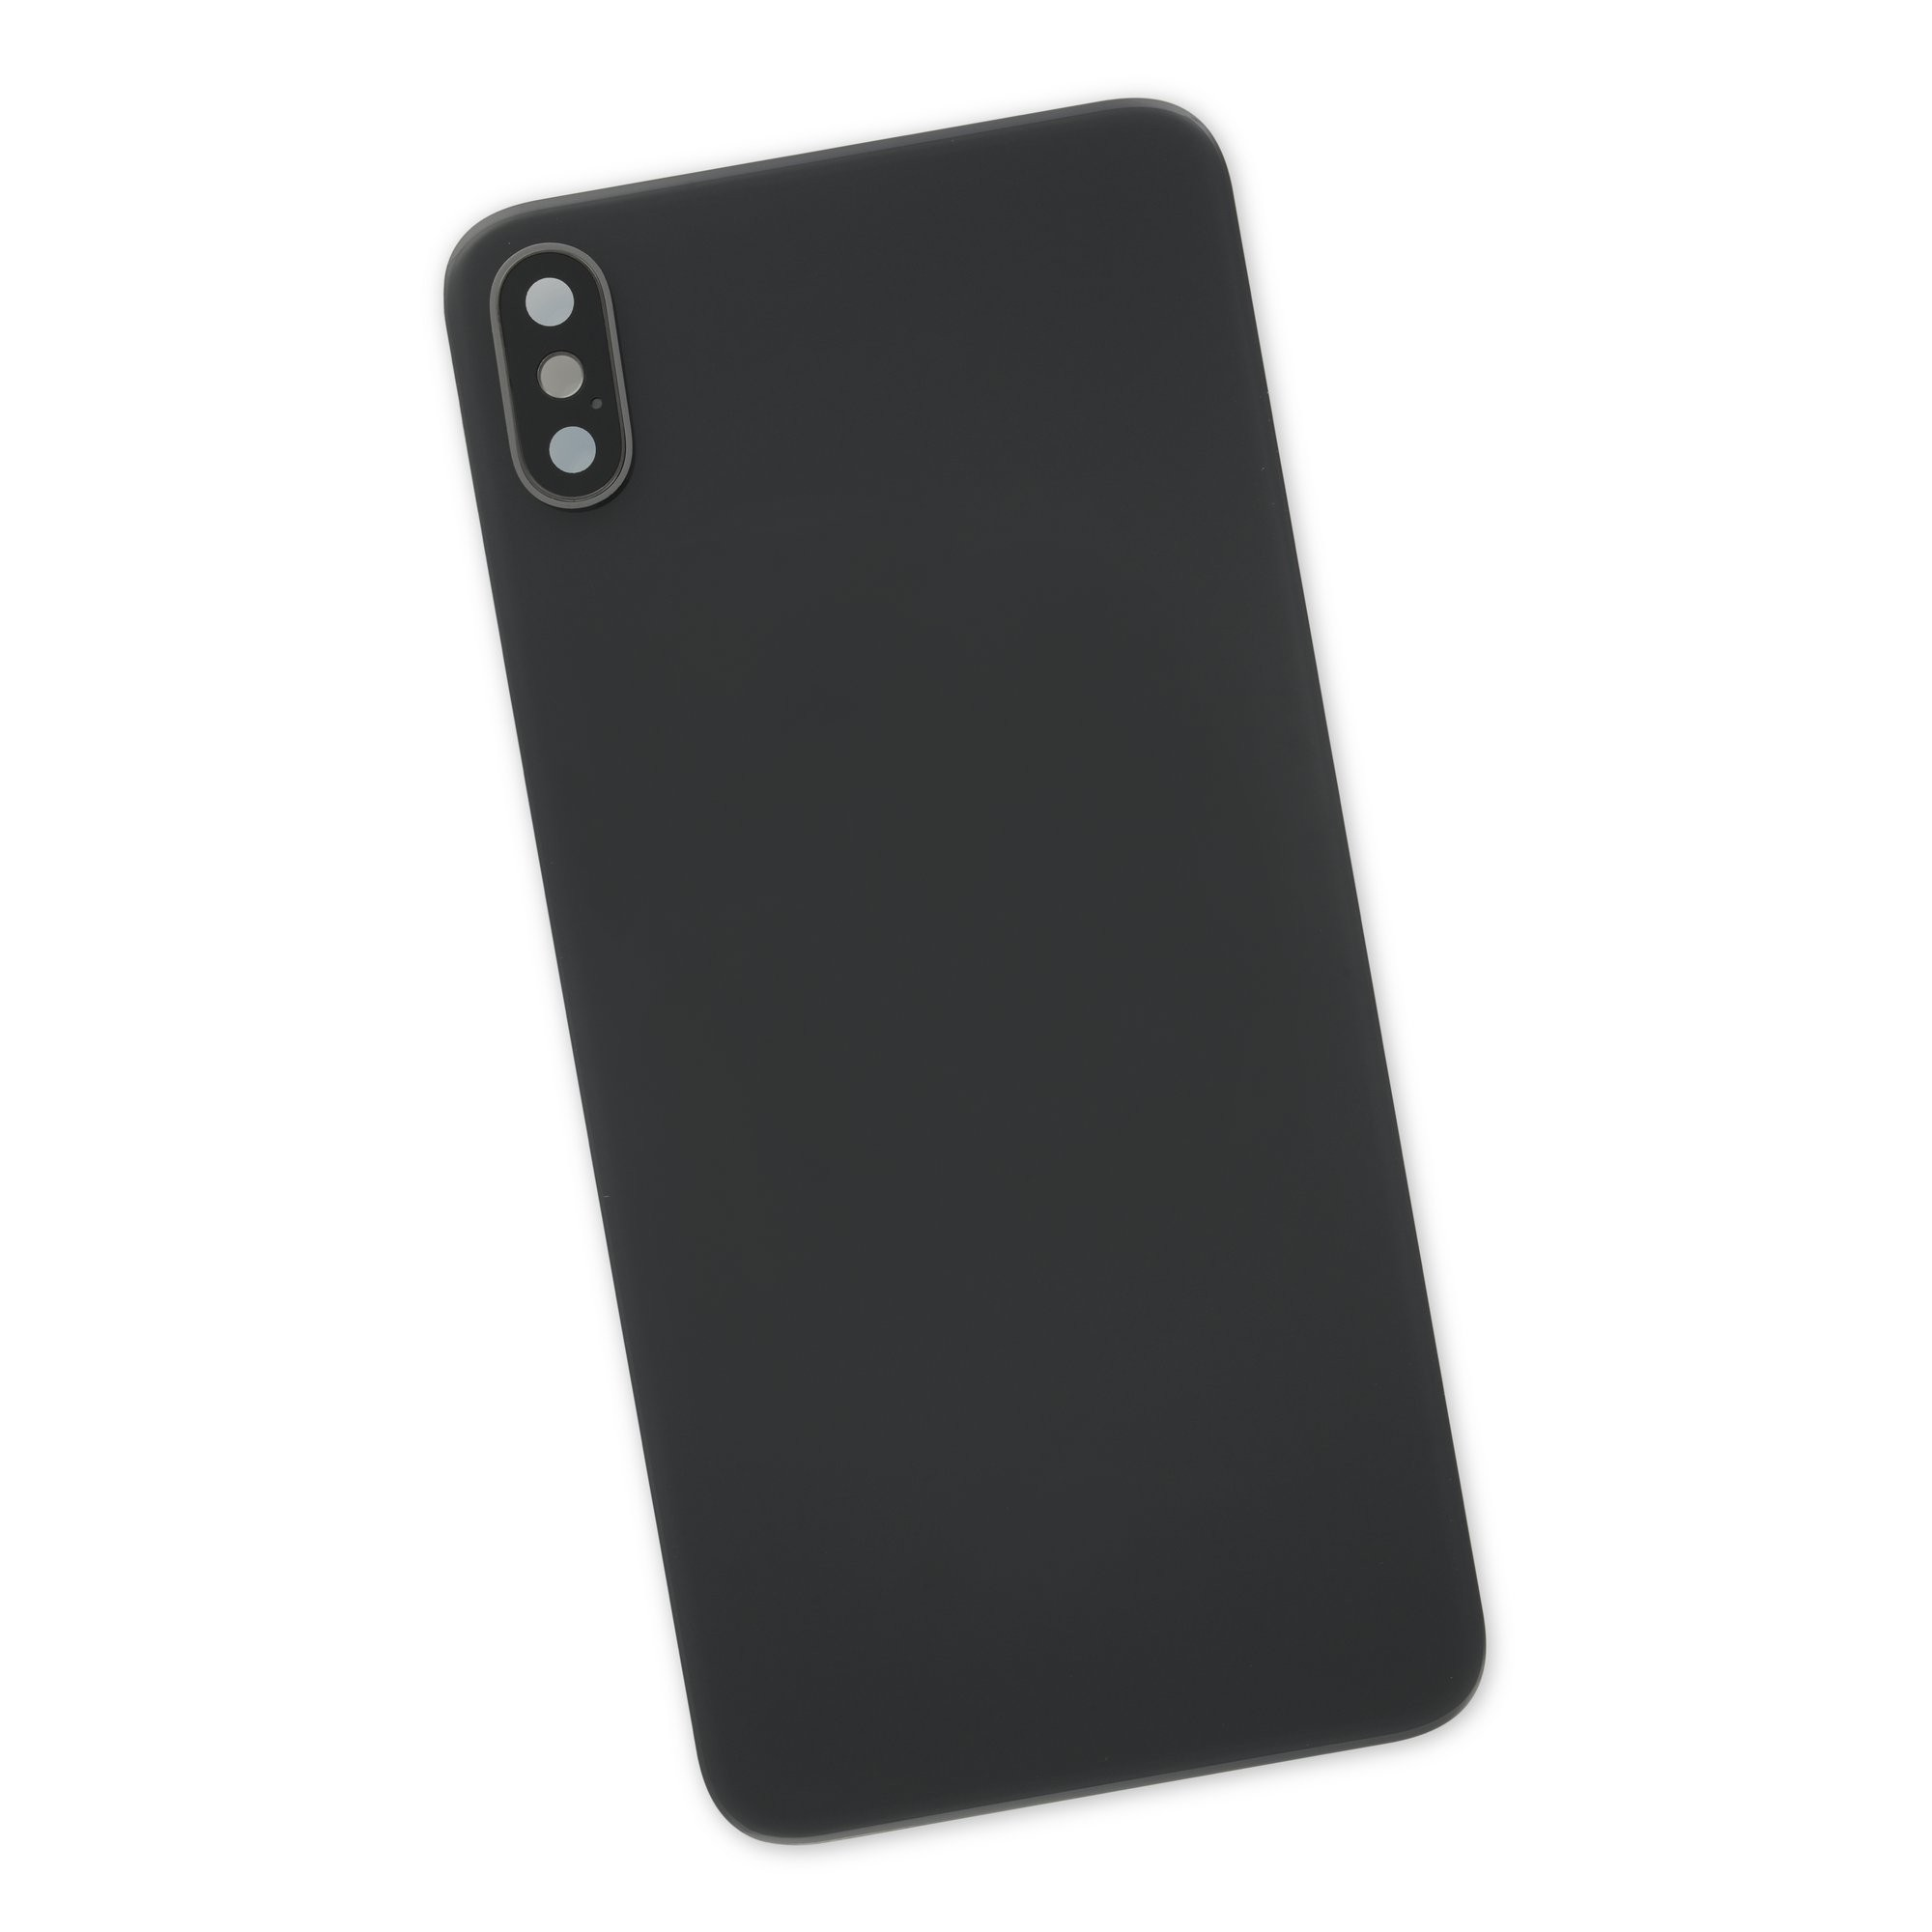 iPhone XS Max Aftermarket Blank Rear Glass Panel with Lens Cover - Black, IF407-017-1